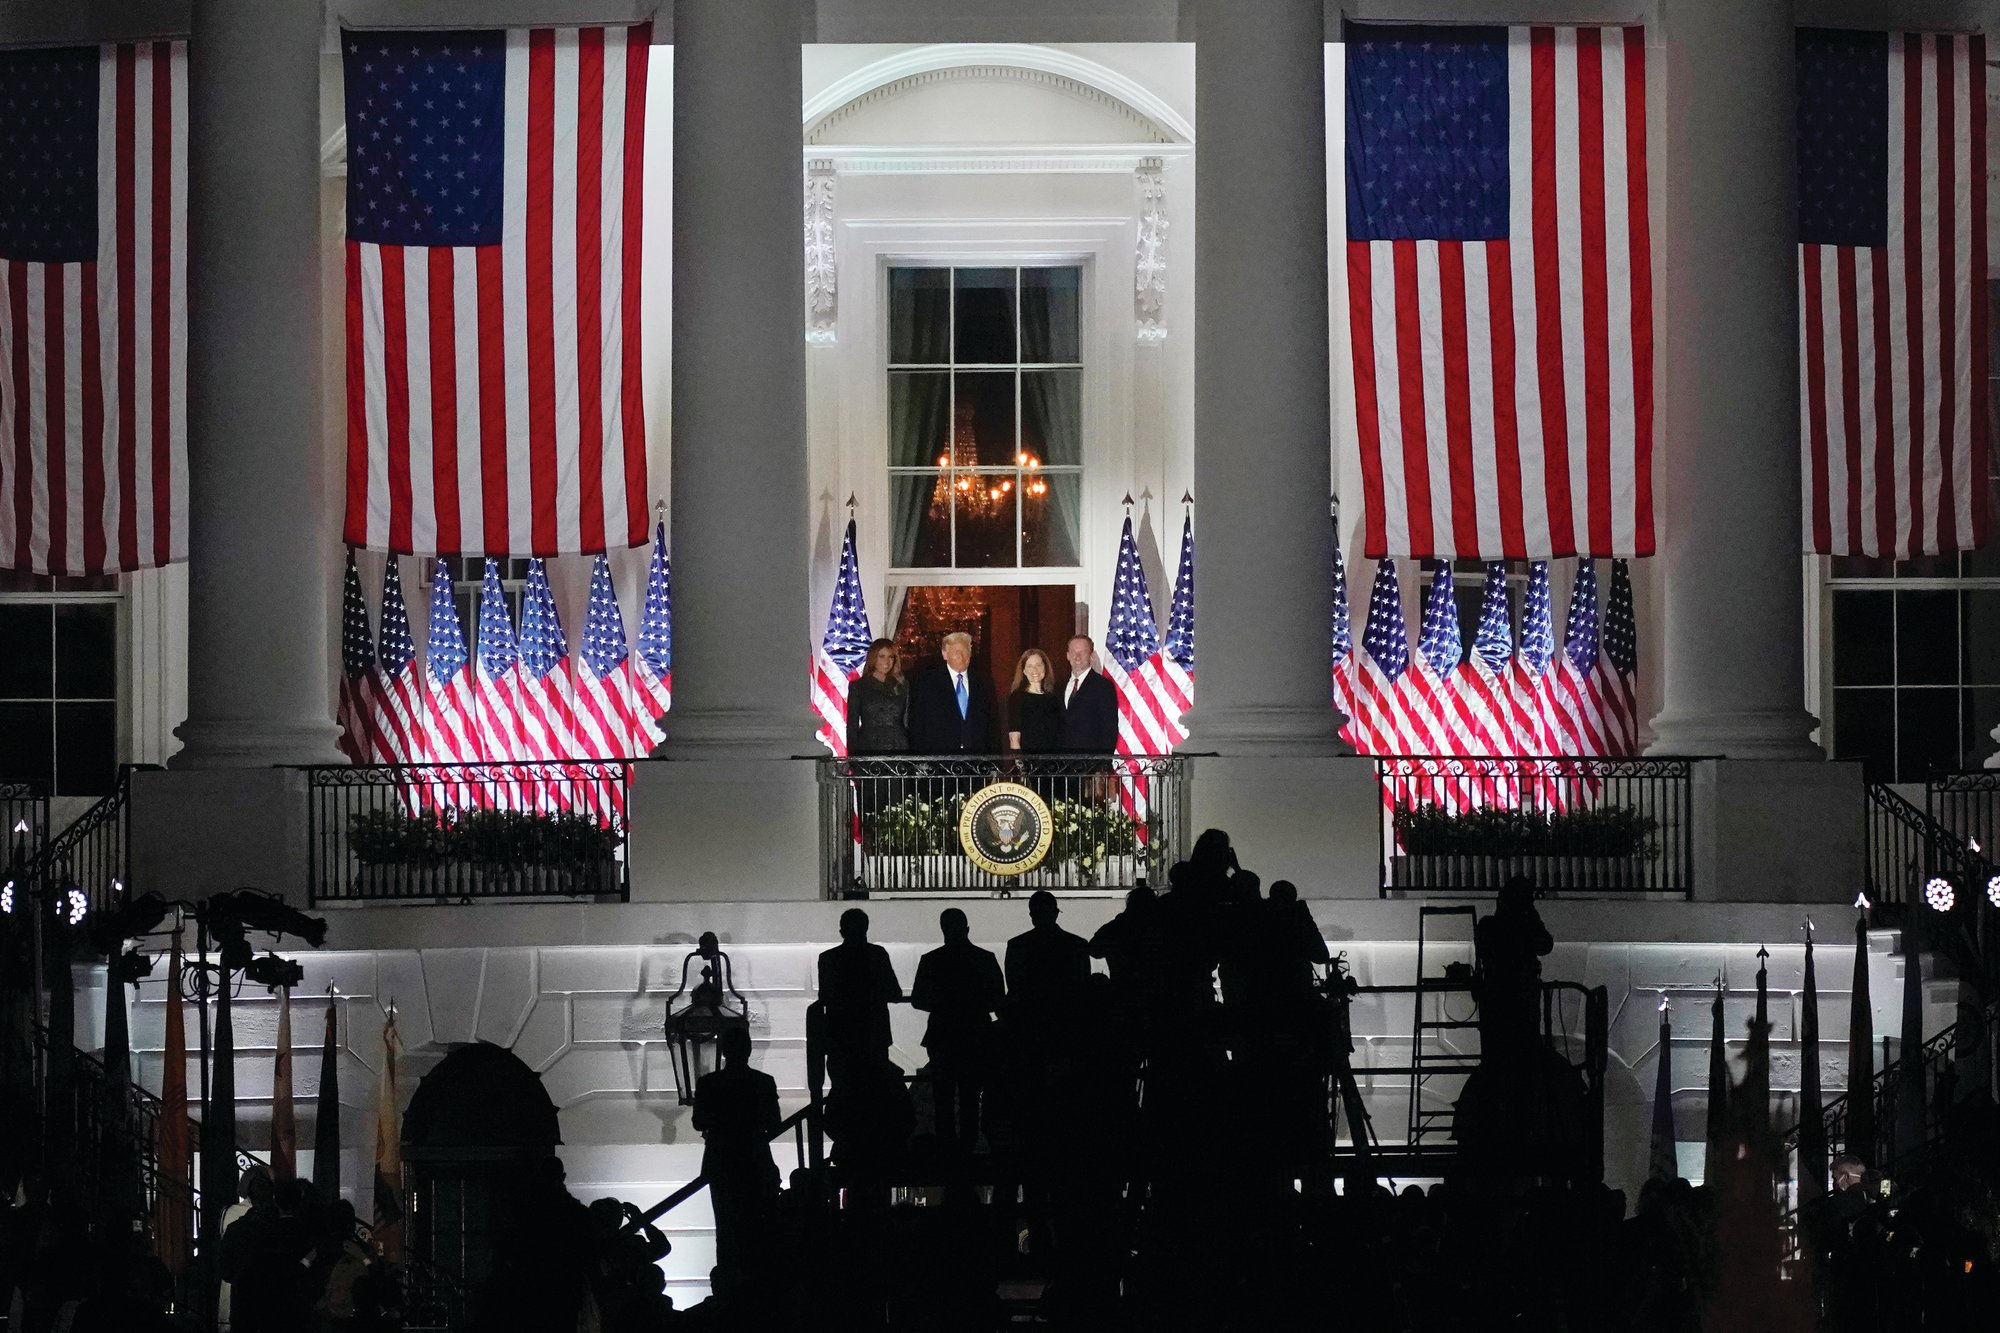 THE ASSOCIATED PRESSFrom left, First Lady Melania Trump, President Donald Trump, Judge Amy Coney Barrett, and her husband, Jesse Barrett, stand on the Blue Room Balcony after Supreme Court Justice Clarence Thomas administered the Constitutional Oath on the South Lawn of the White House in Washington on Monday night.